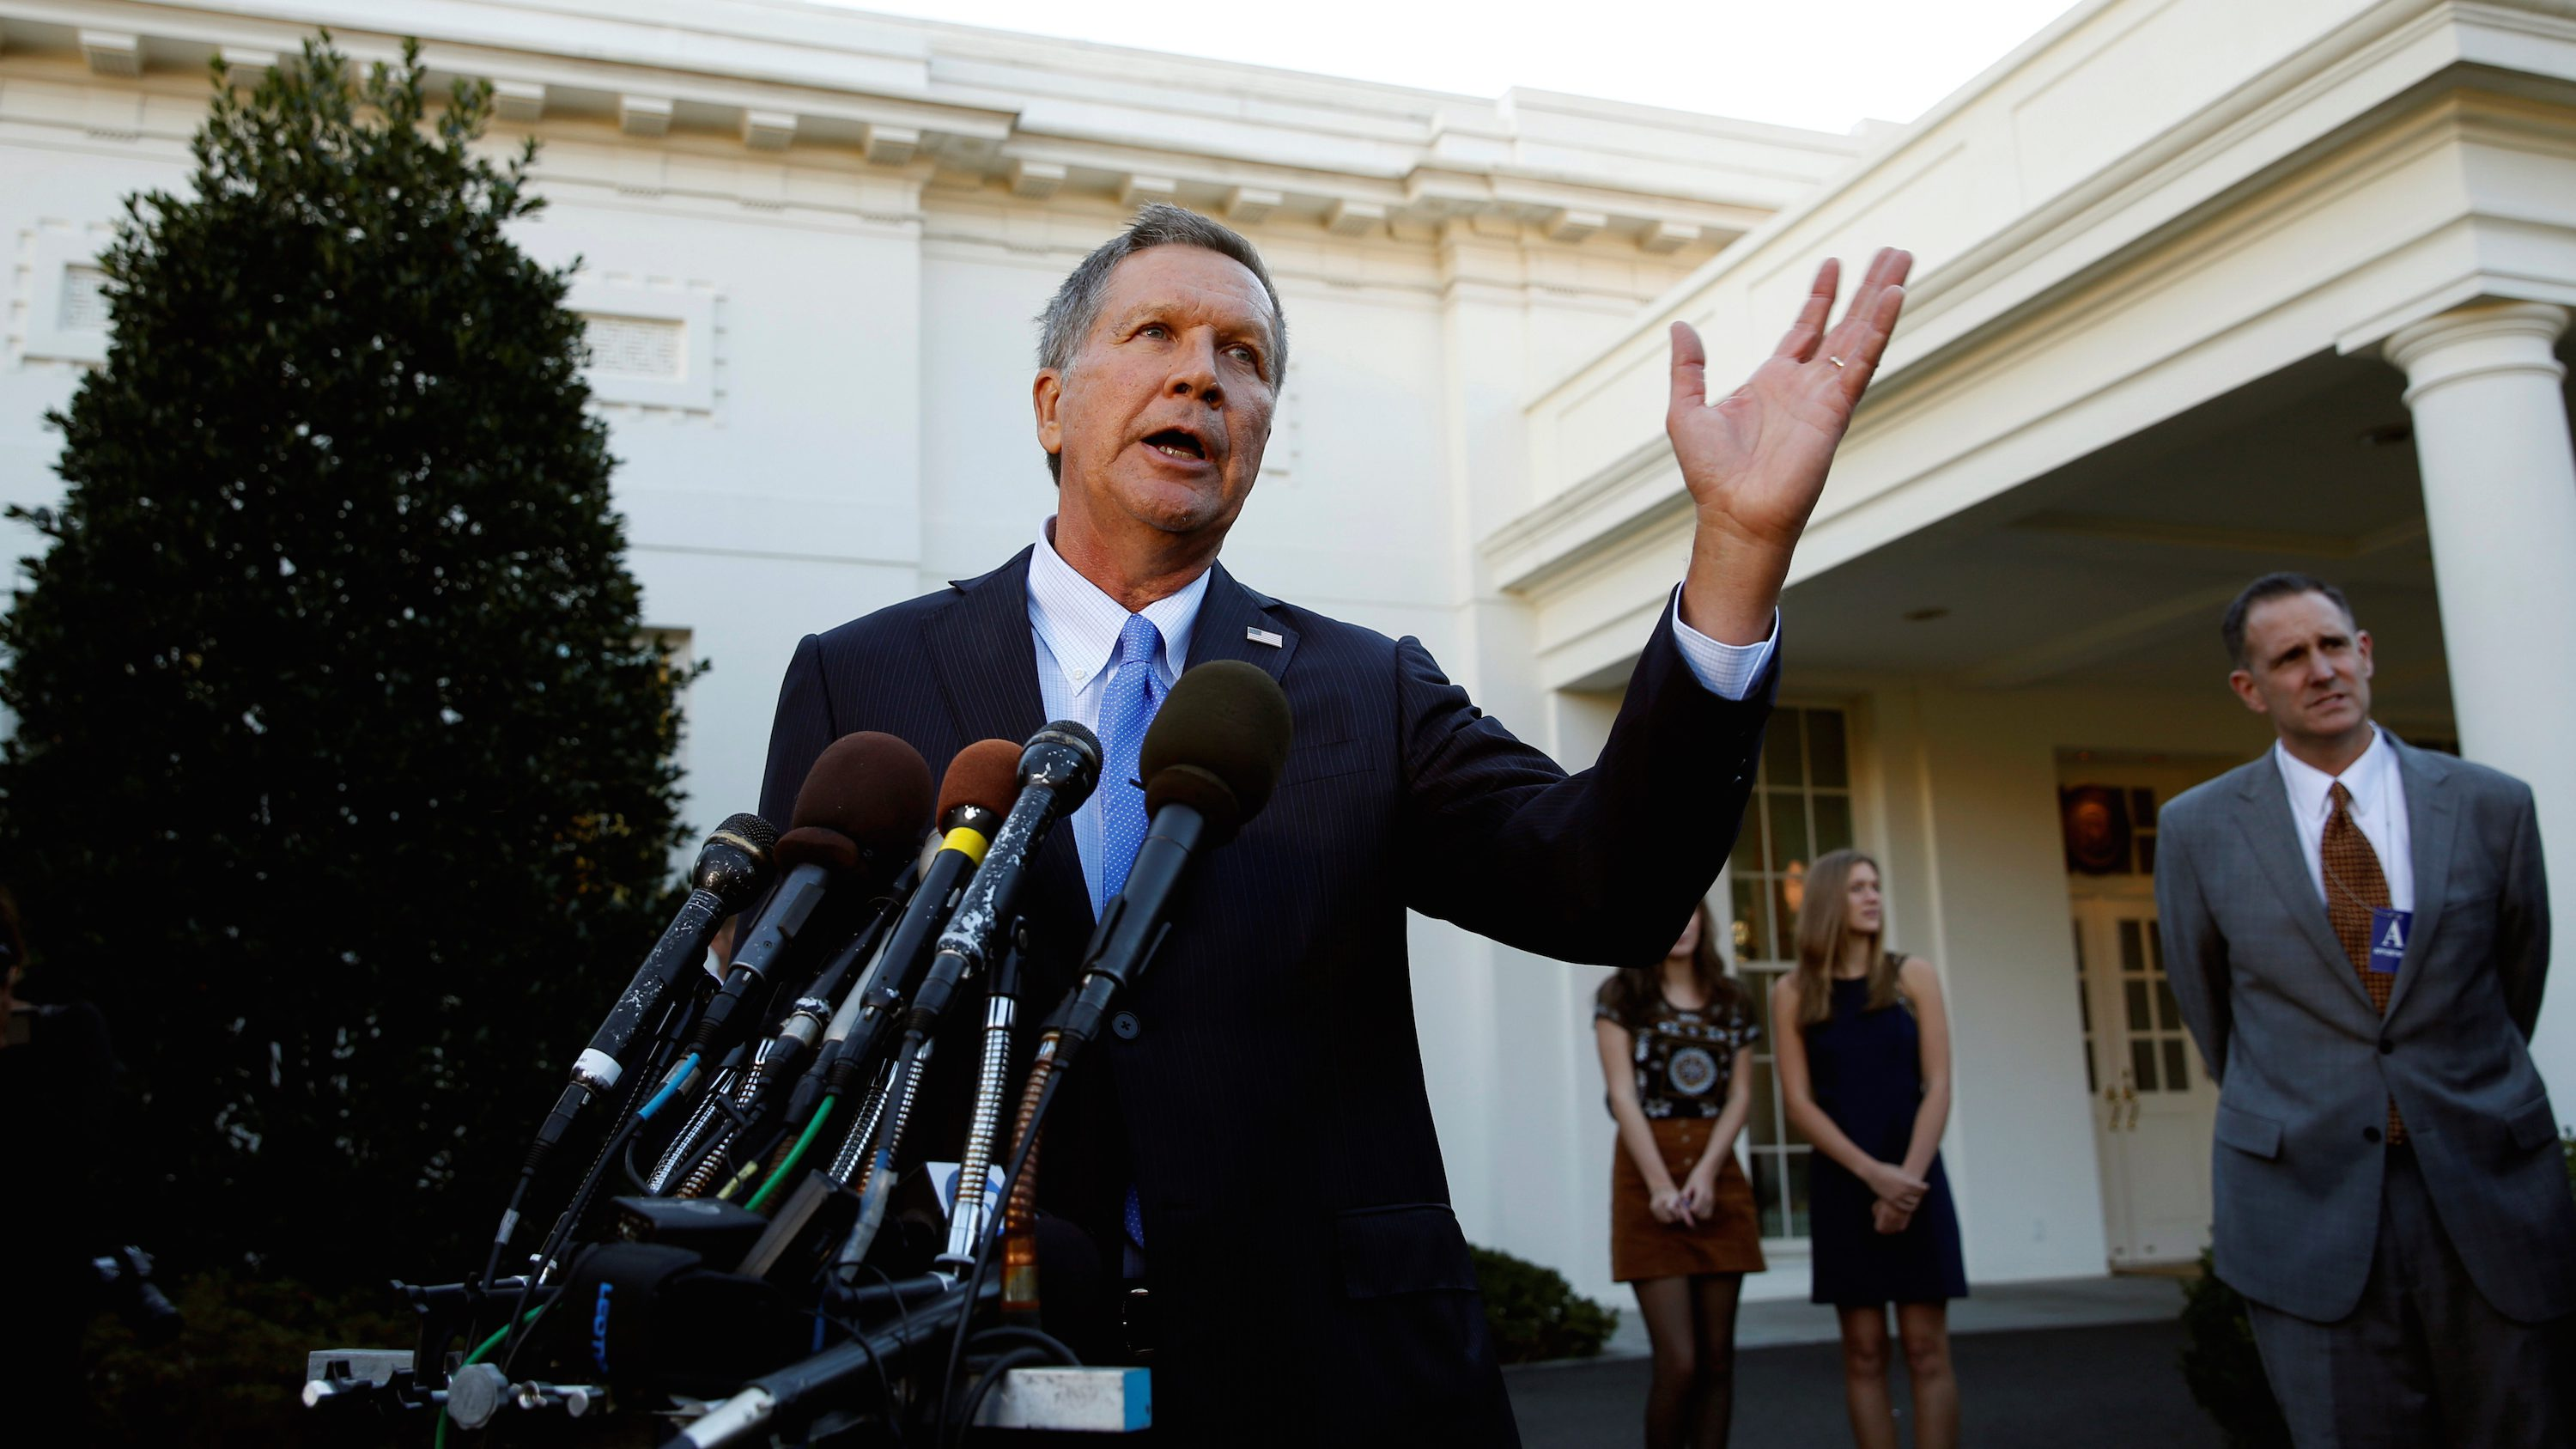 Ohio Governor and former presidential candidate John Kasich speaks to reporters after an event honoring the Cleveland Cavaliers, the 2016 NBA championship team, at the White House in Washington November 10, 2016.